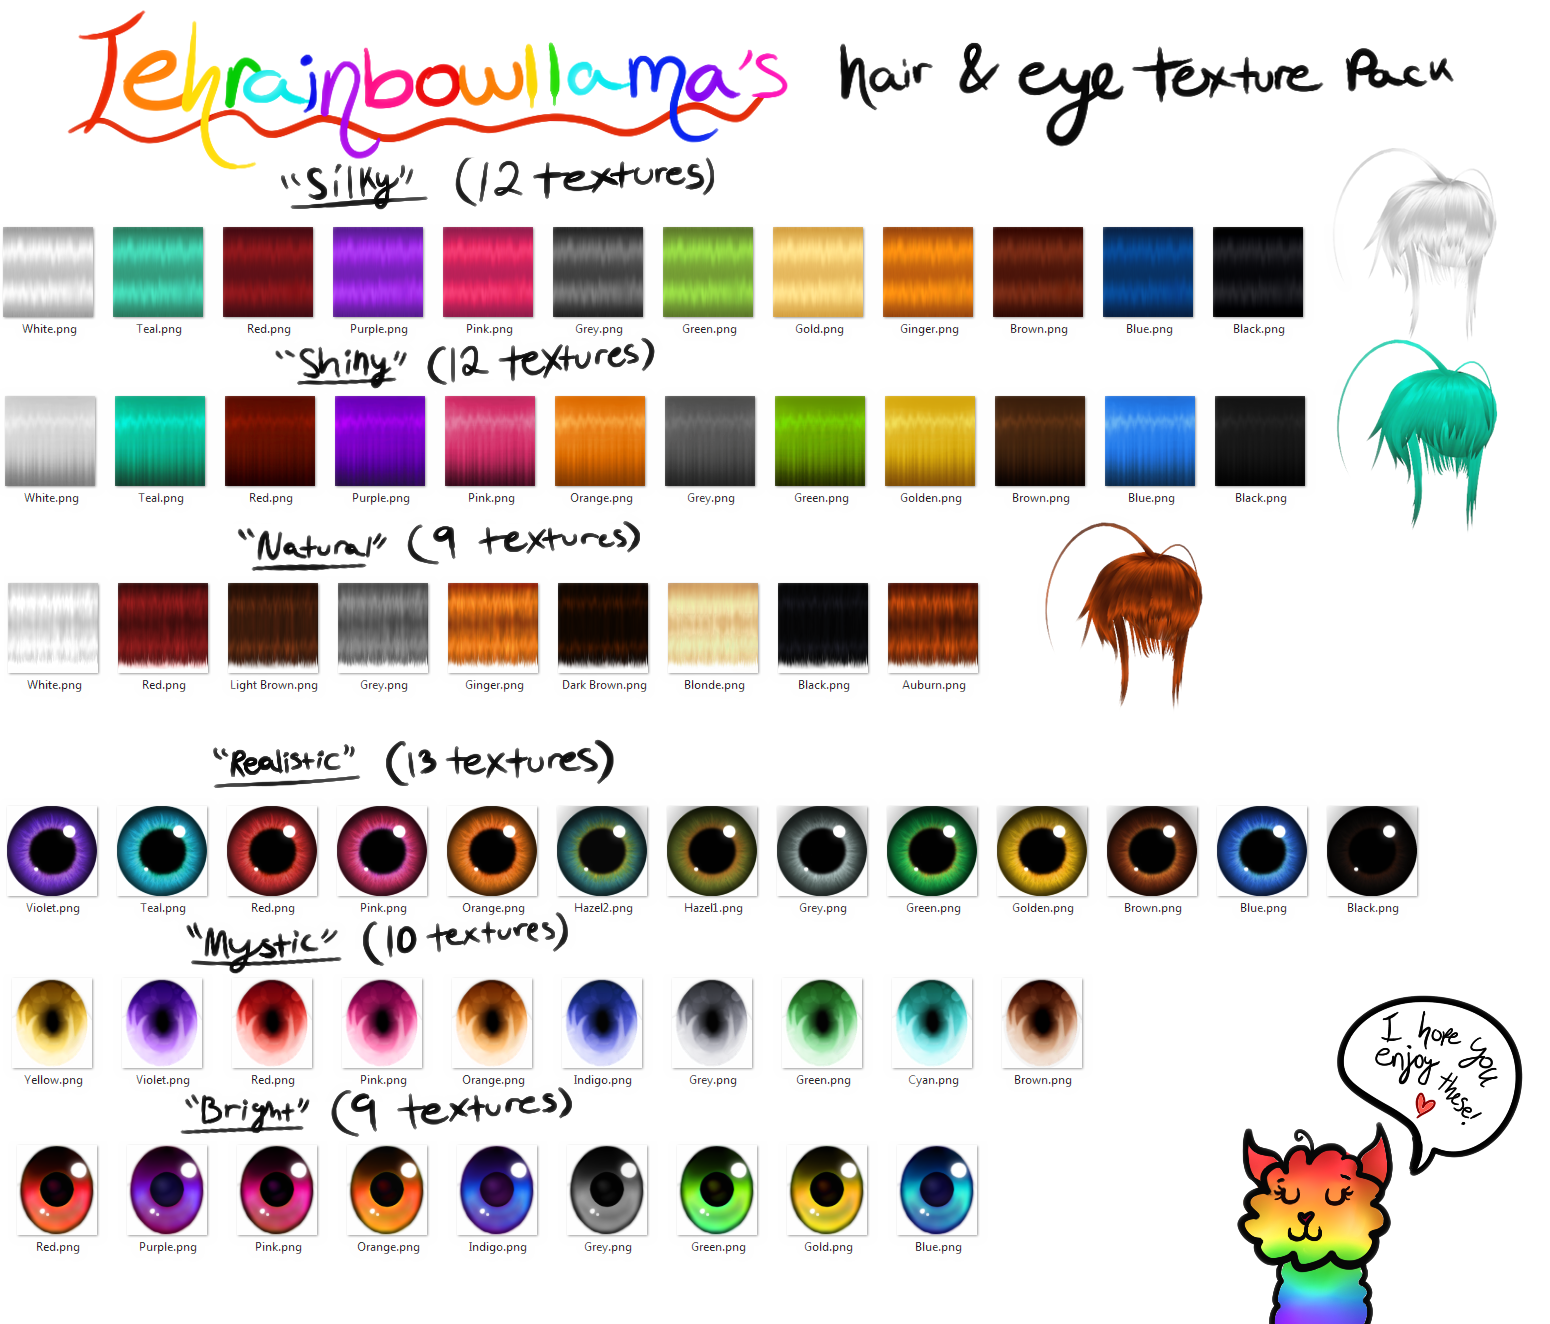 Tehrainbowllama's Hair and Eye Texture Pack by Tehrainbowllama